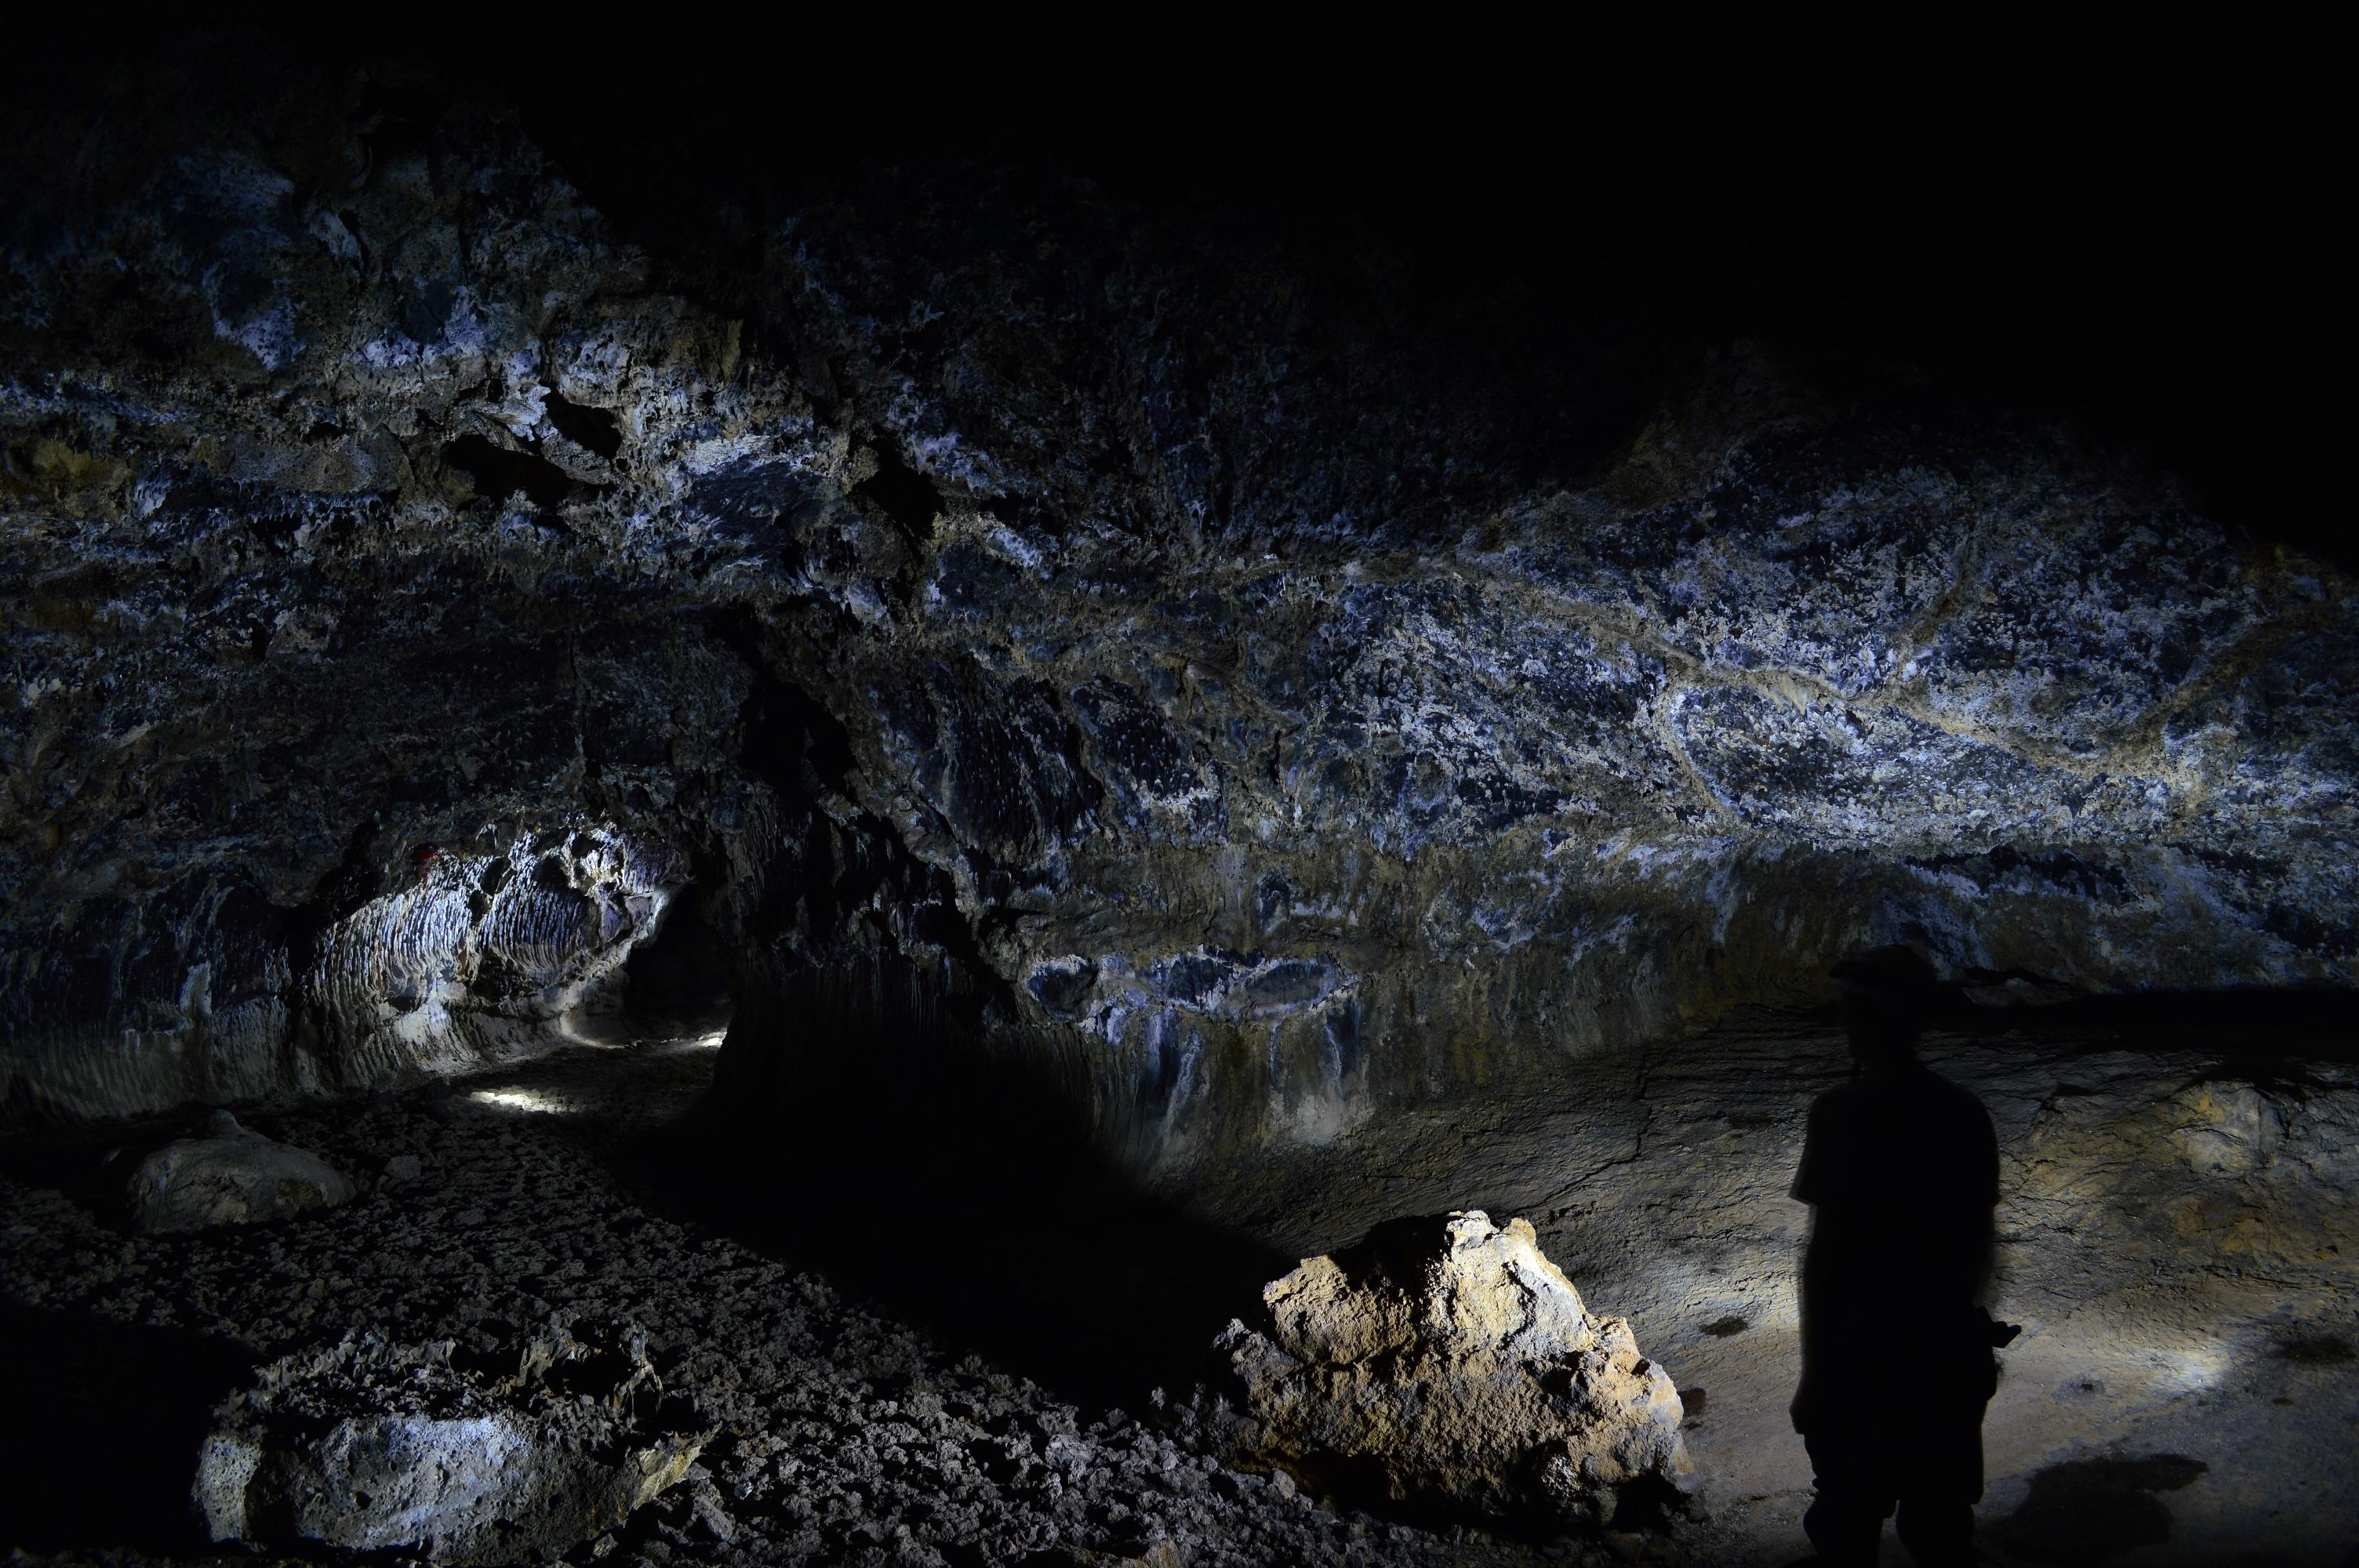 Many of the caves at Lava Beds National Monument were discovered by J.D. Howard. Photo courtesy Lava Beds National Monument